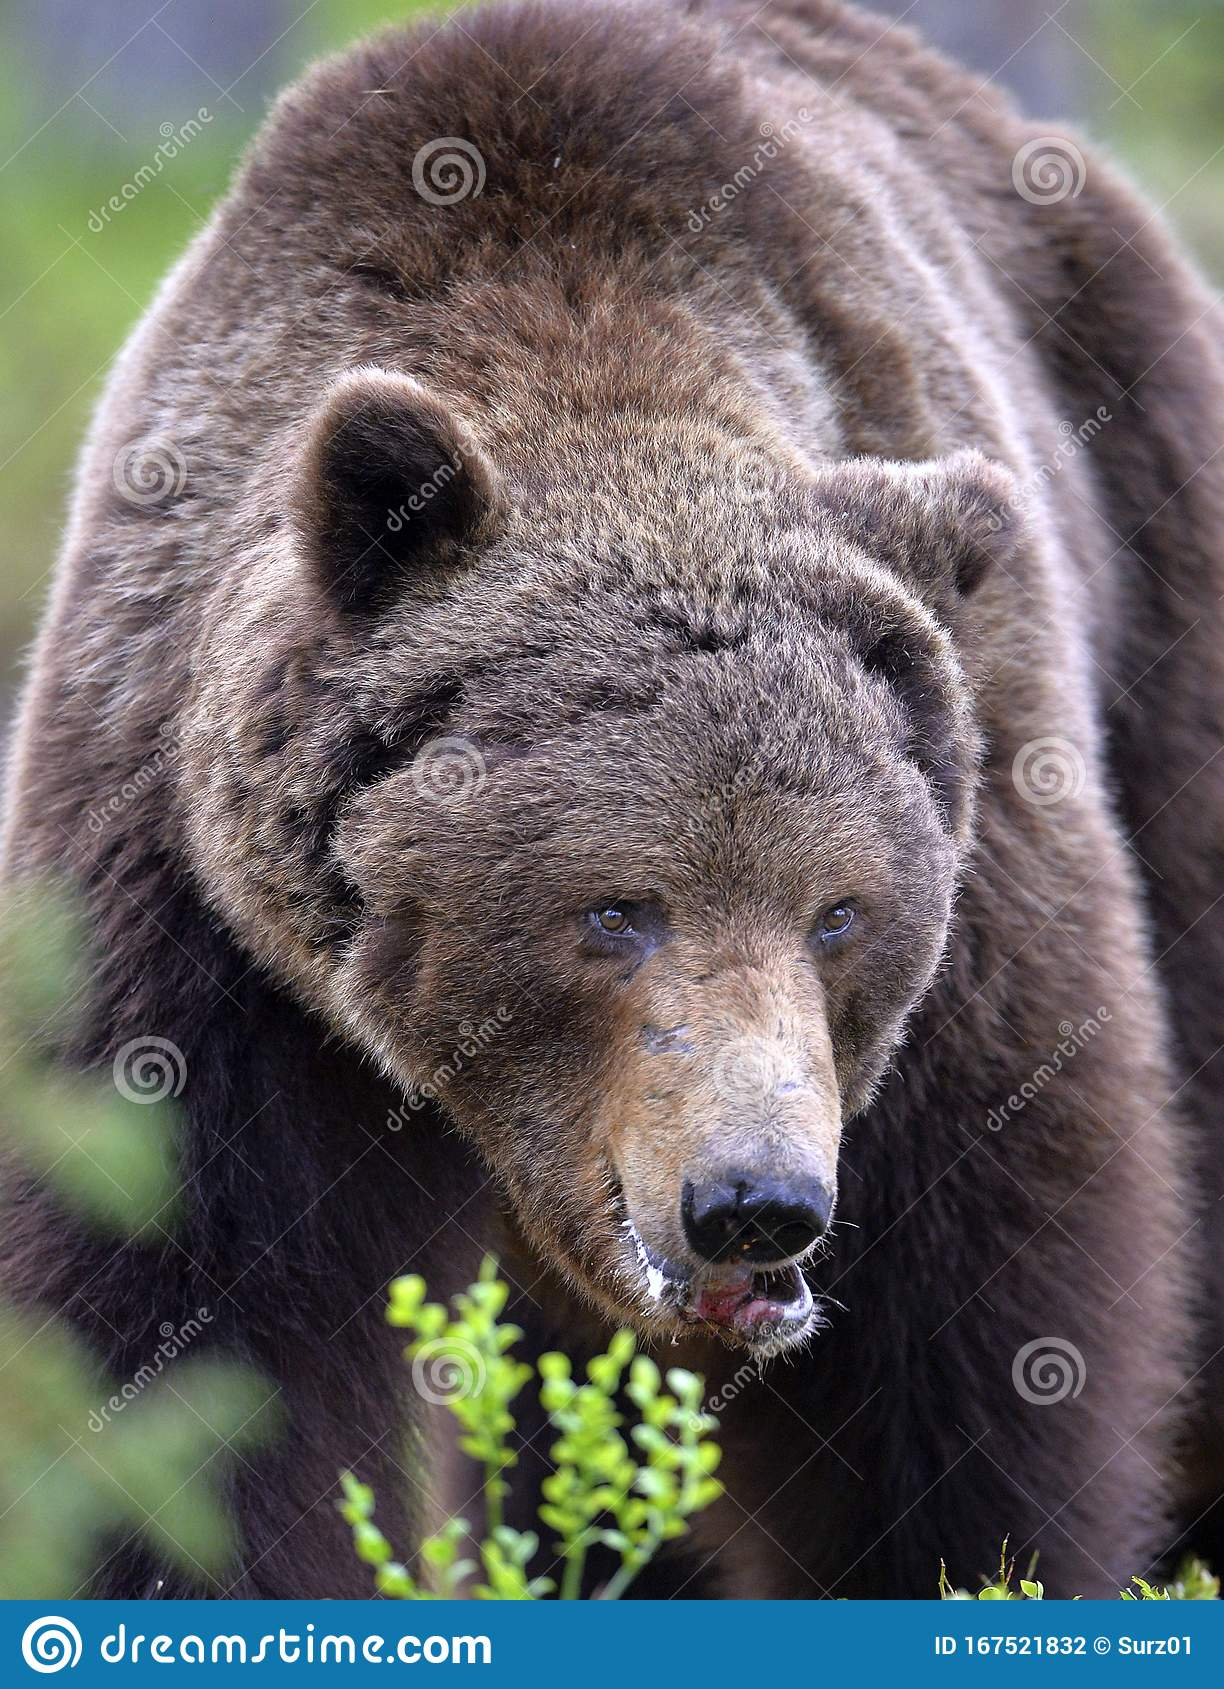 Big Adult Male Of Brown Bear Front View Close Up Stock Photo Image Of Brown Eyes 167521832 You'll have to allow messages from the bearfront.com domain/email. dreamstime com